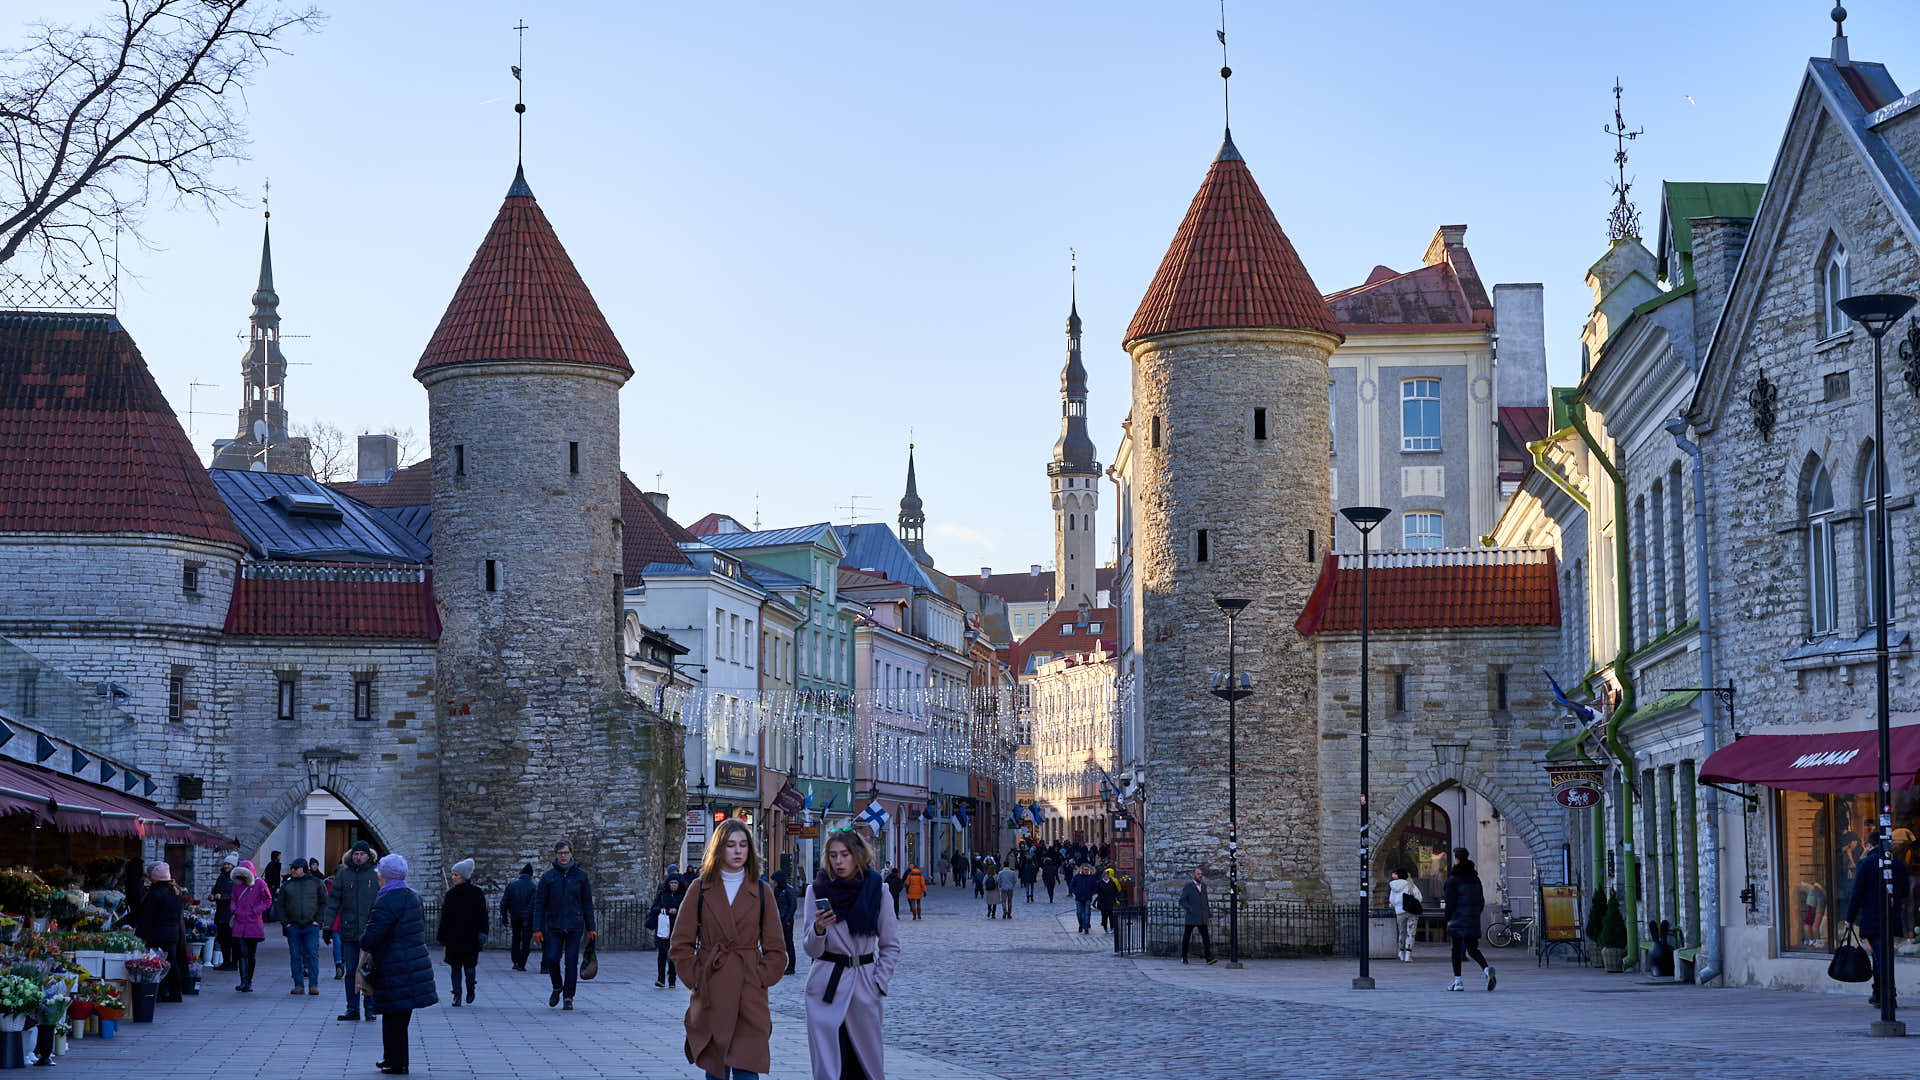 The Viru Gate in Tallinn